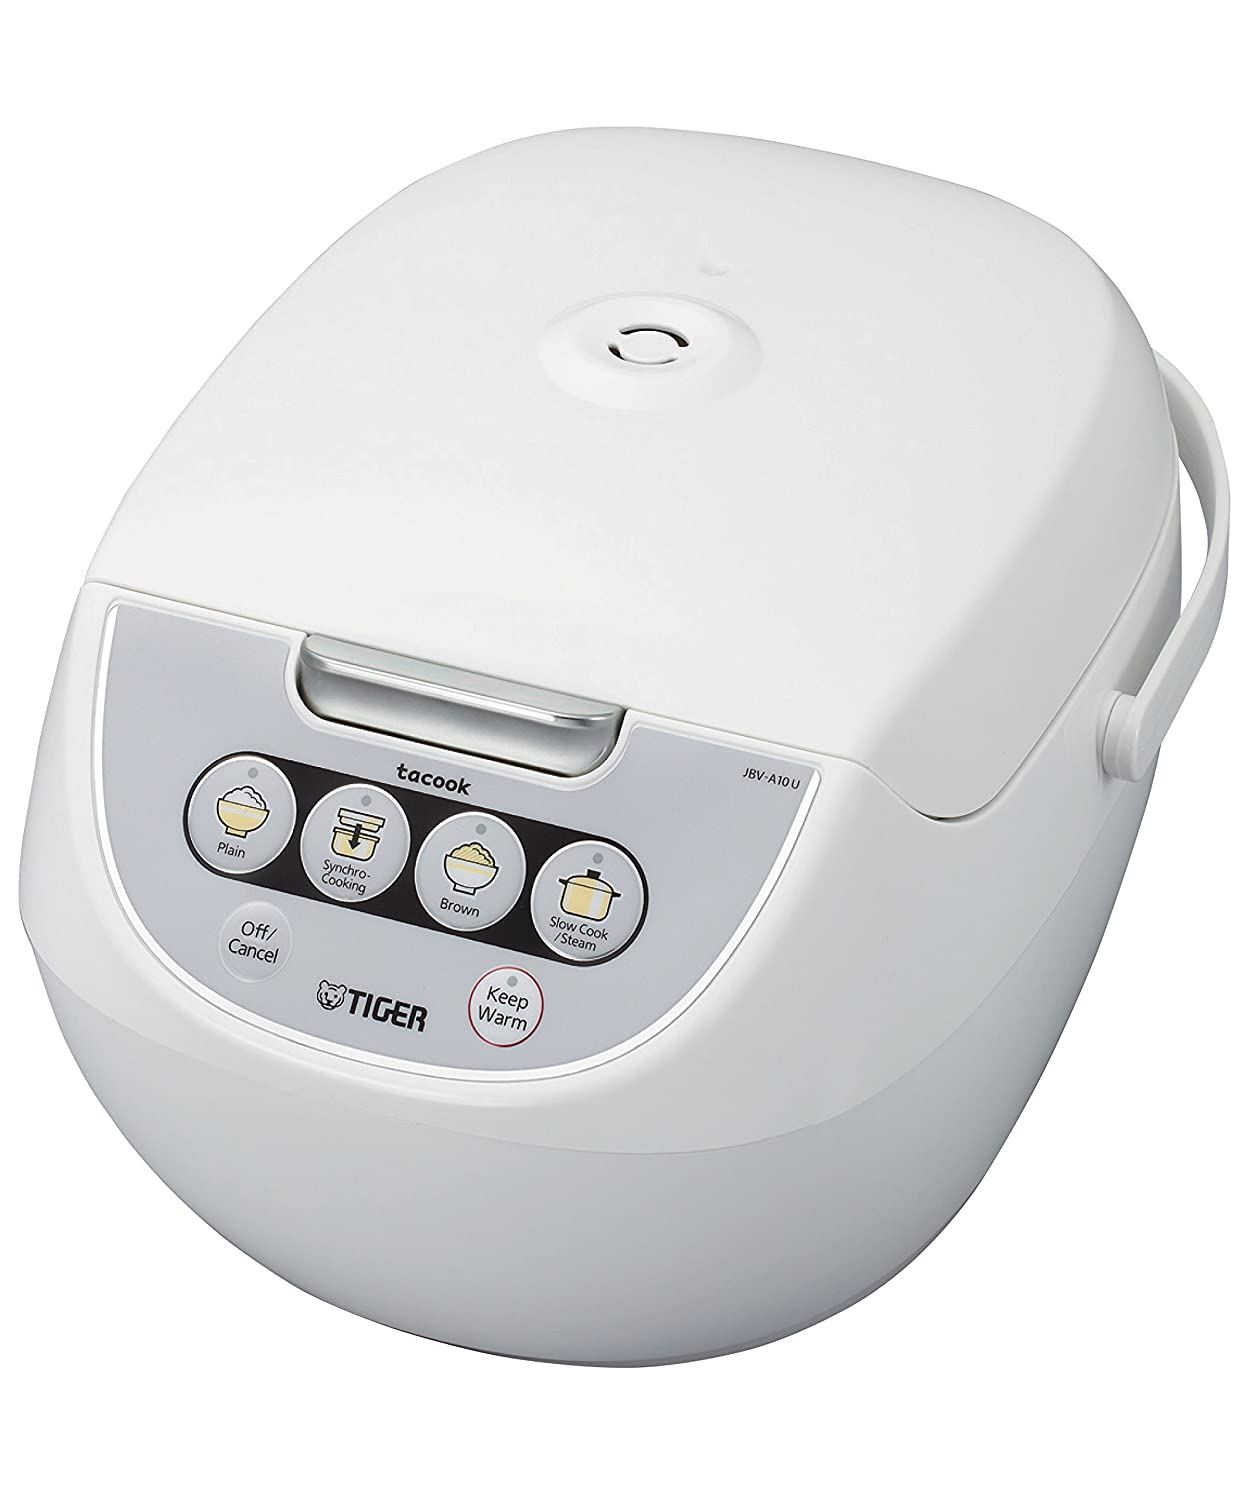 Tiger Corporation JBV-A10U-W Micom Rice Cooker